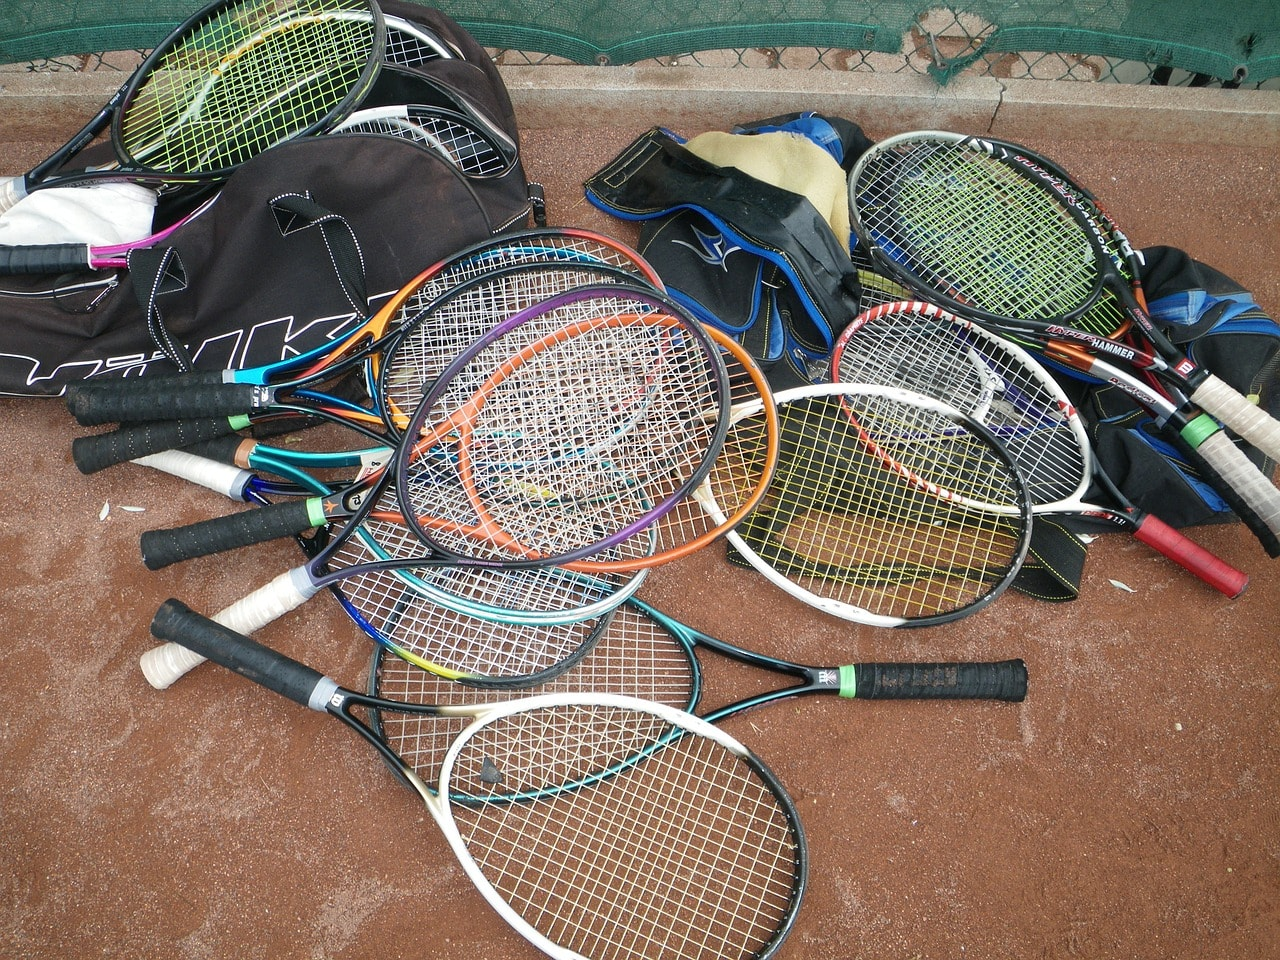 Tennis racquets resting on tennis bags.